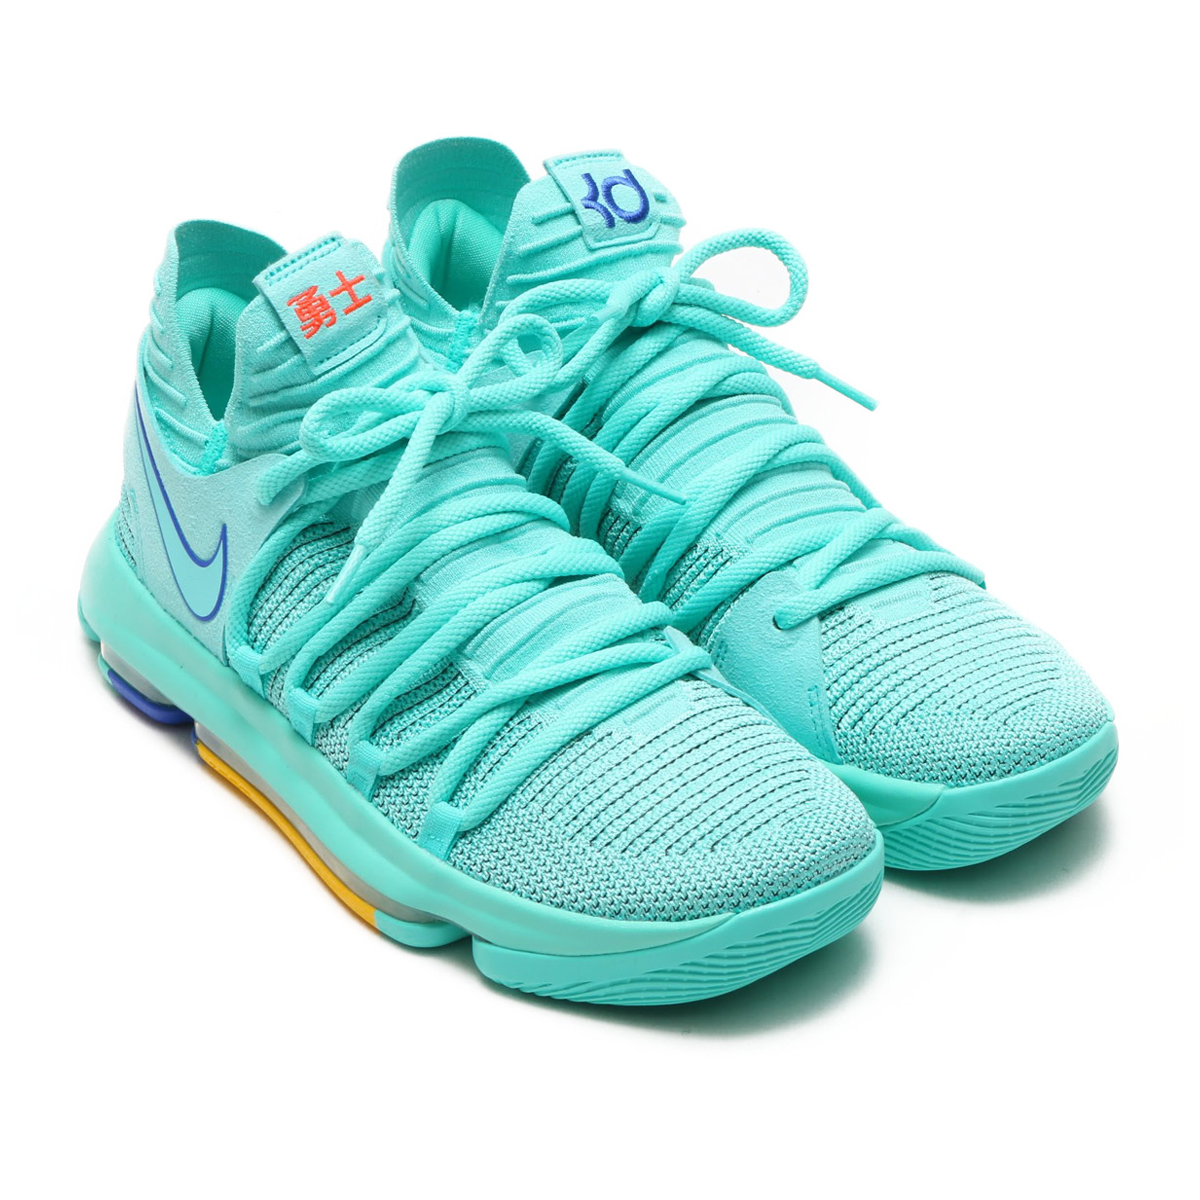 NIKE ZOOM KD10 EP(ナイキ ズーム KD 10 EP)(HYPER TURQ/RACER BLUE-TOTAL CRIMSON)18SU-S